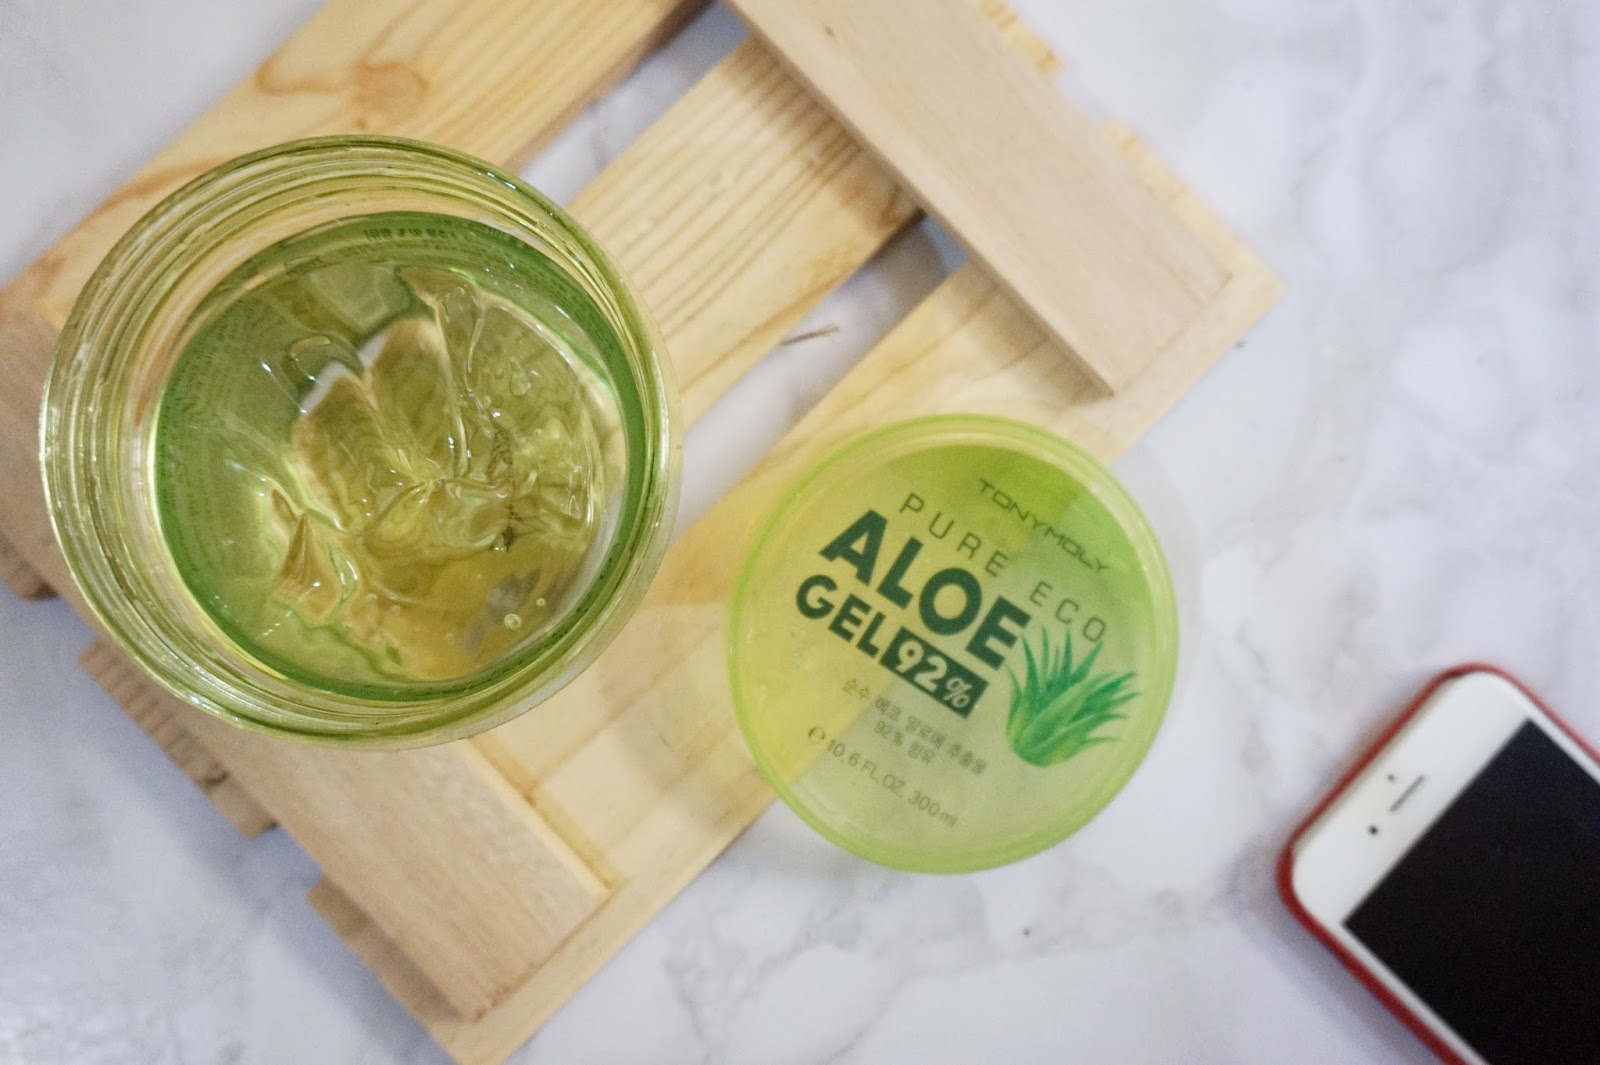 aloe vera gel used to cure sunburns